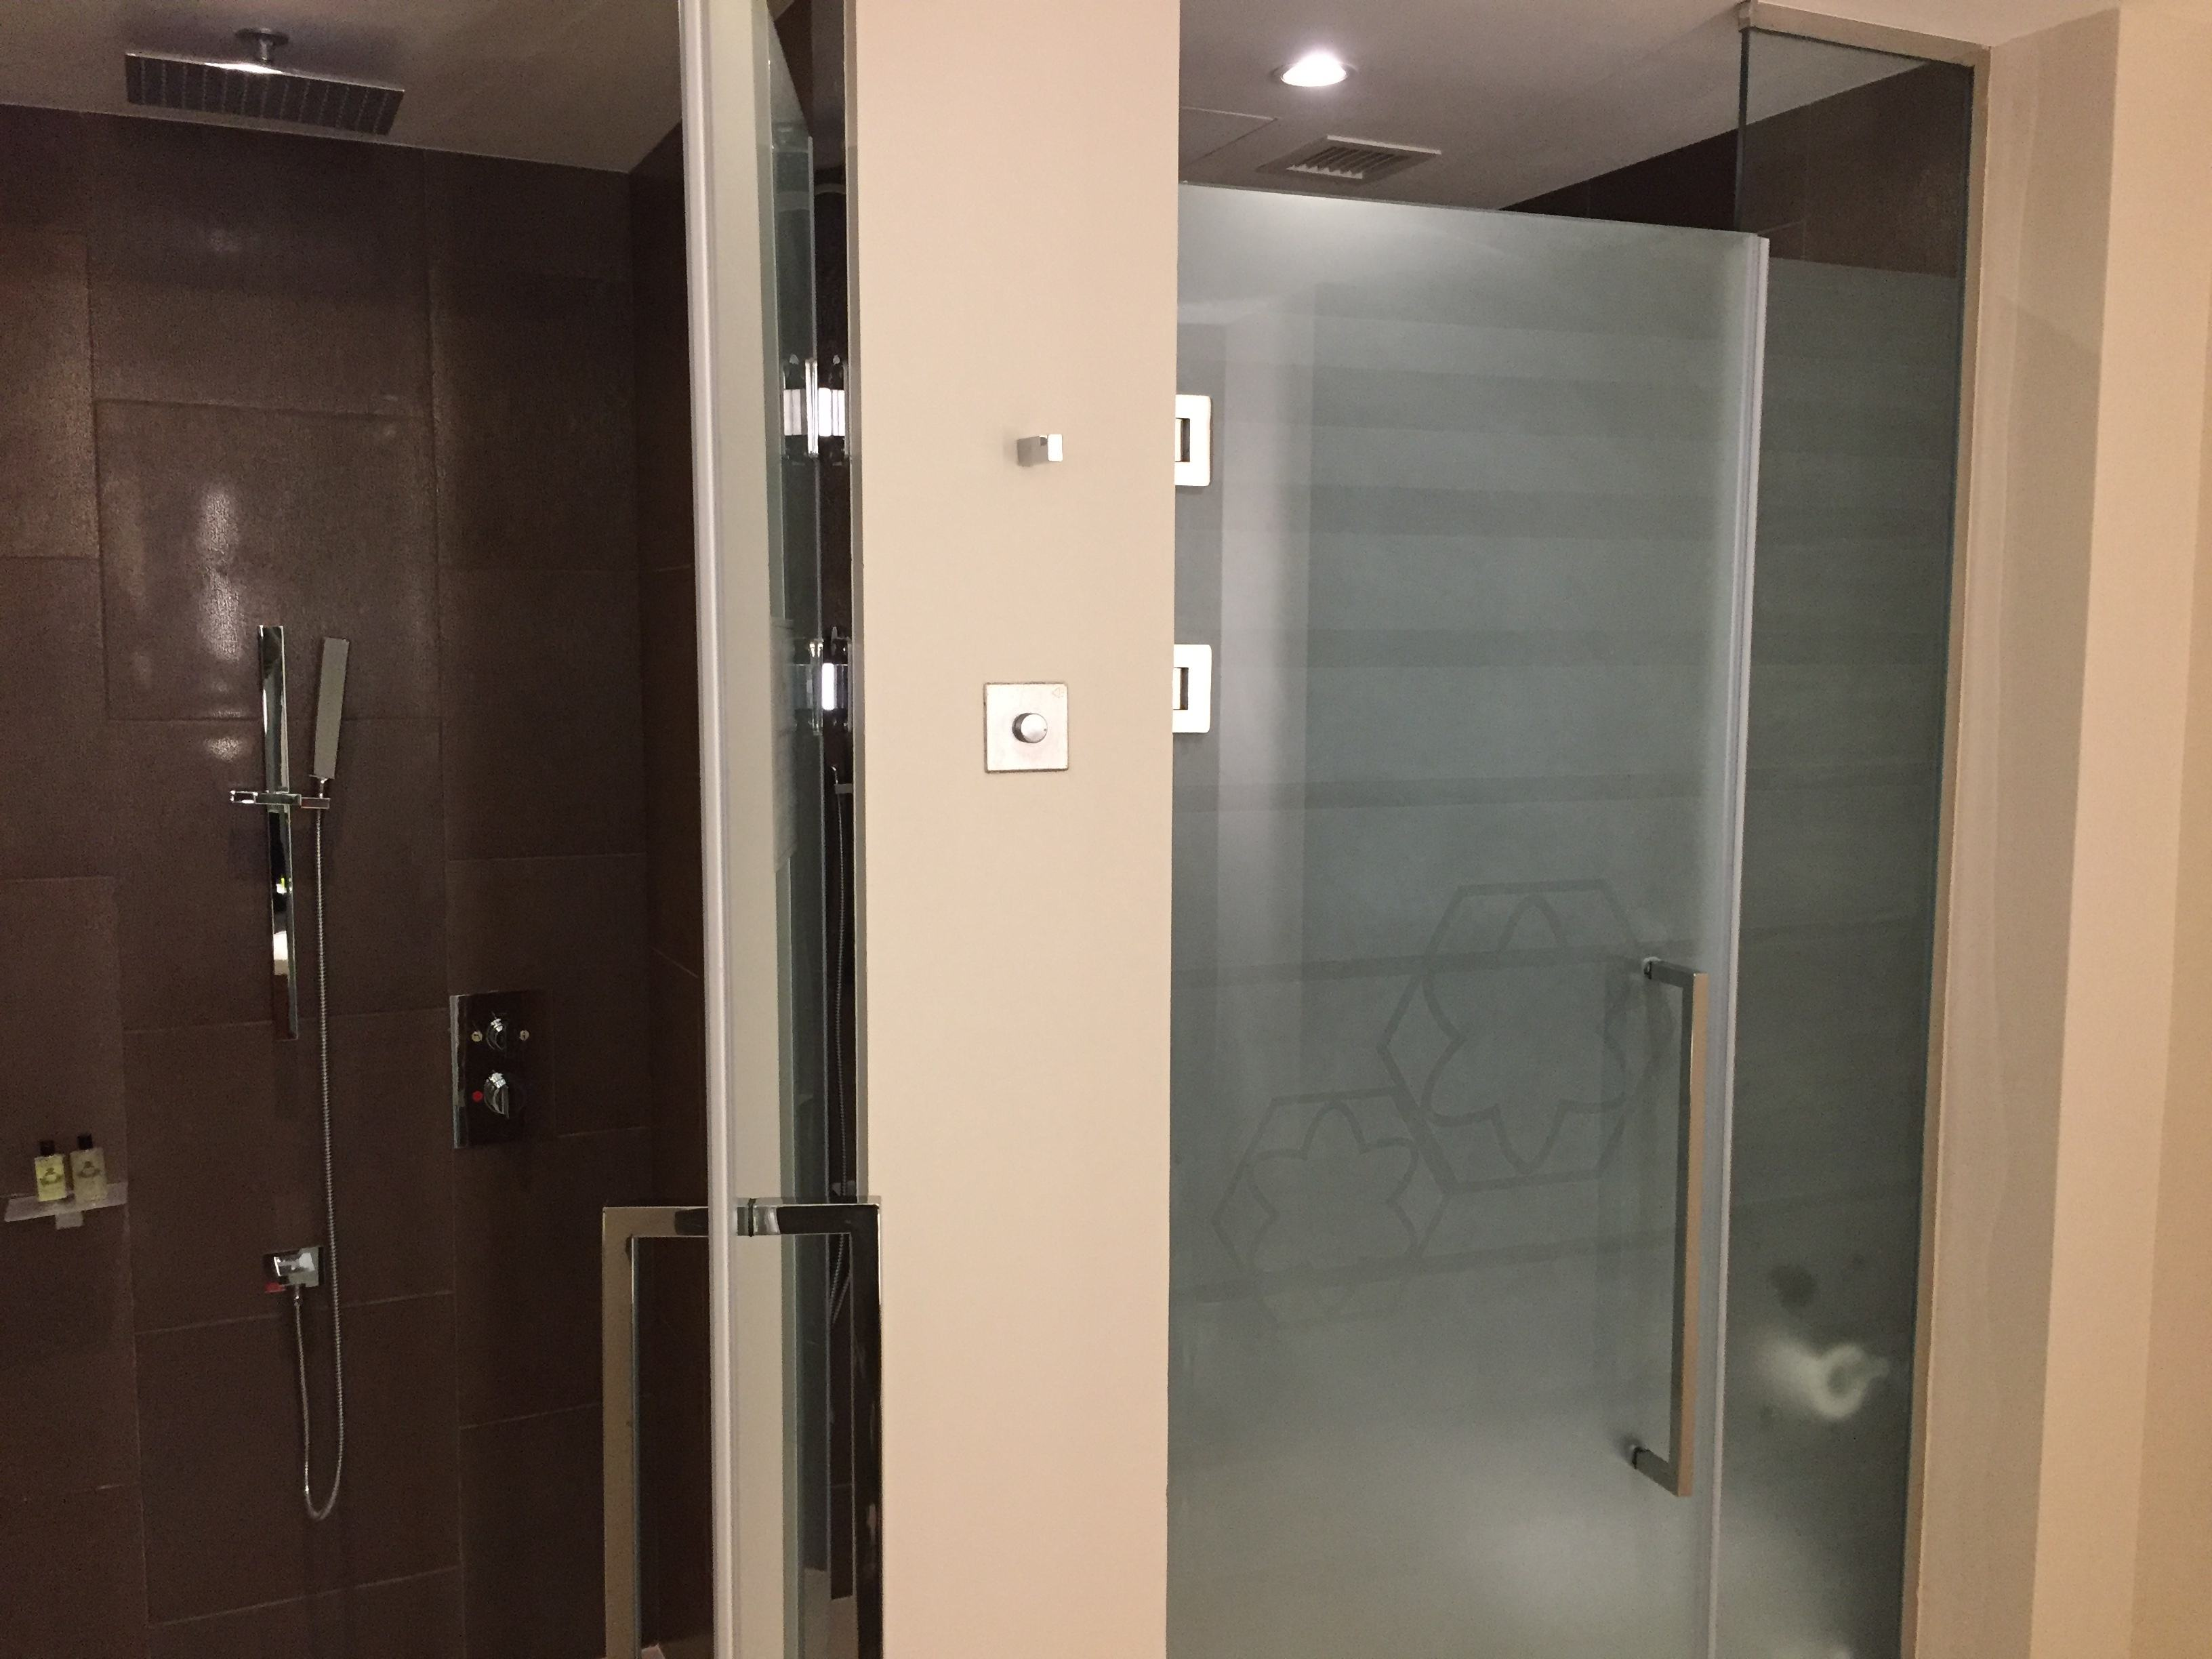 The best rain shower I've experienced is at the InterContinental Doha The City